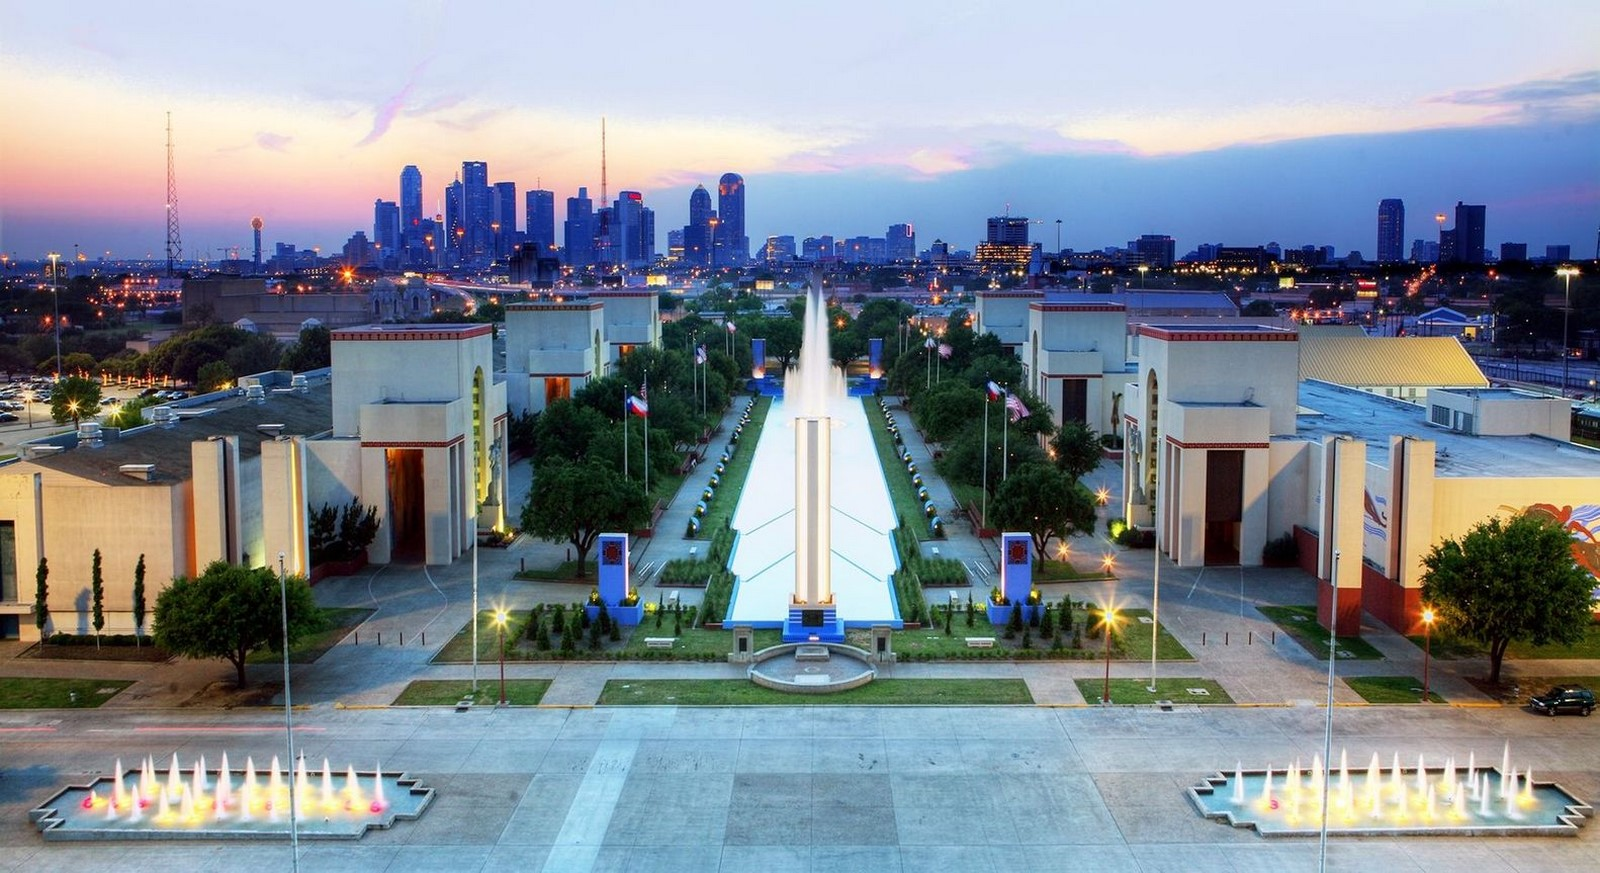 New Transformation of Fair Park in Dallas to be designed by Studio-MLA - Sheet1